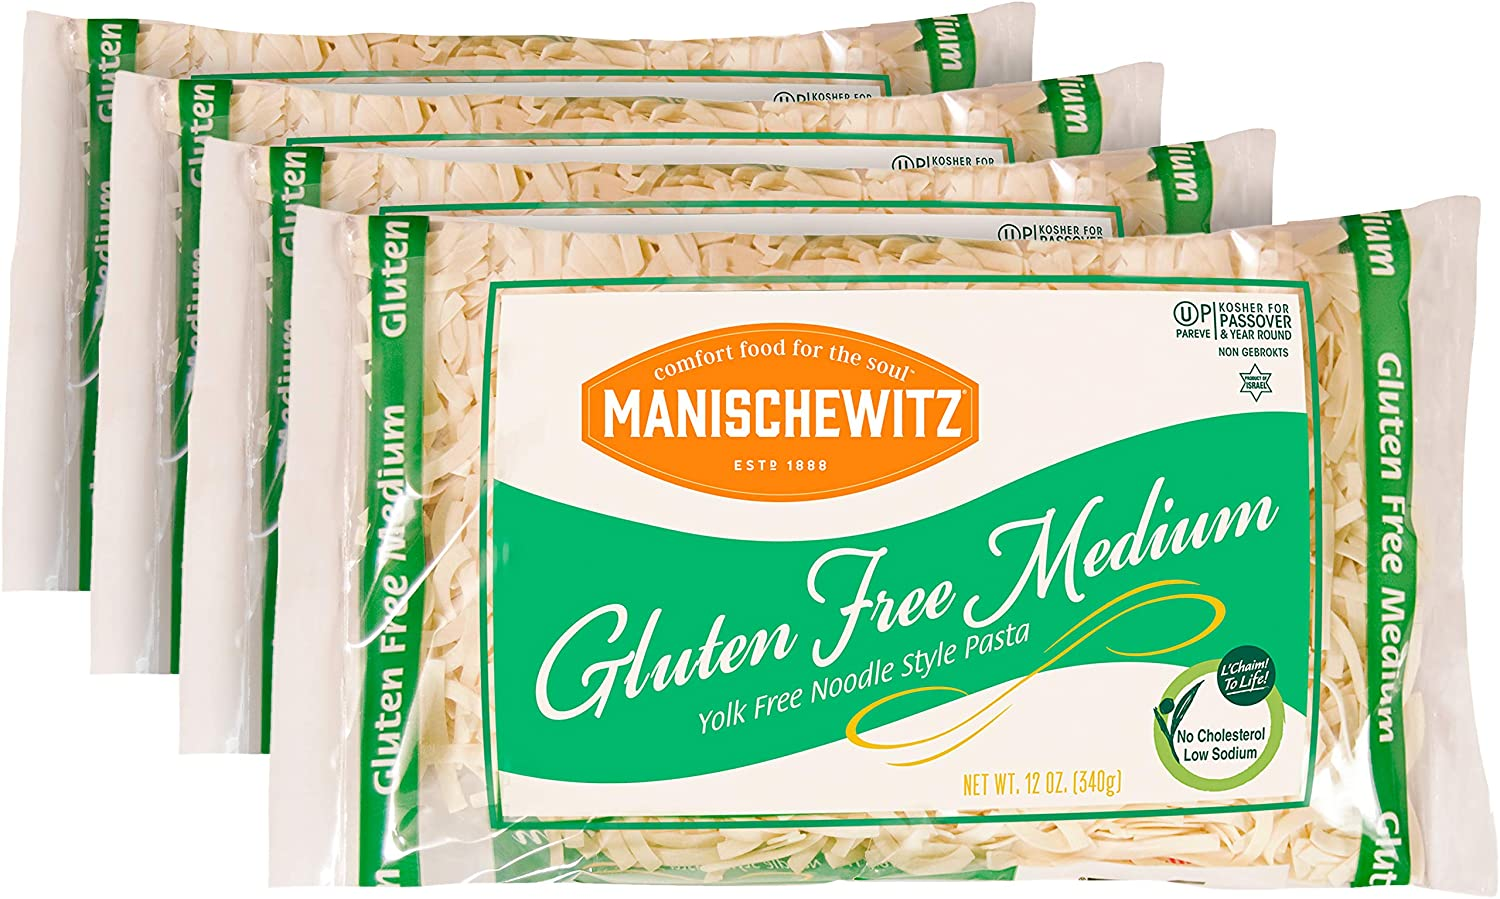 Manischewitz Noodle, Yolk Free, Medium, Passover, 12-Ounce (Pack of 4)